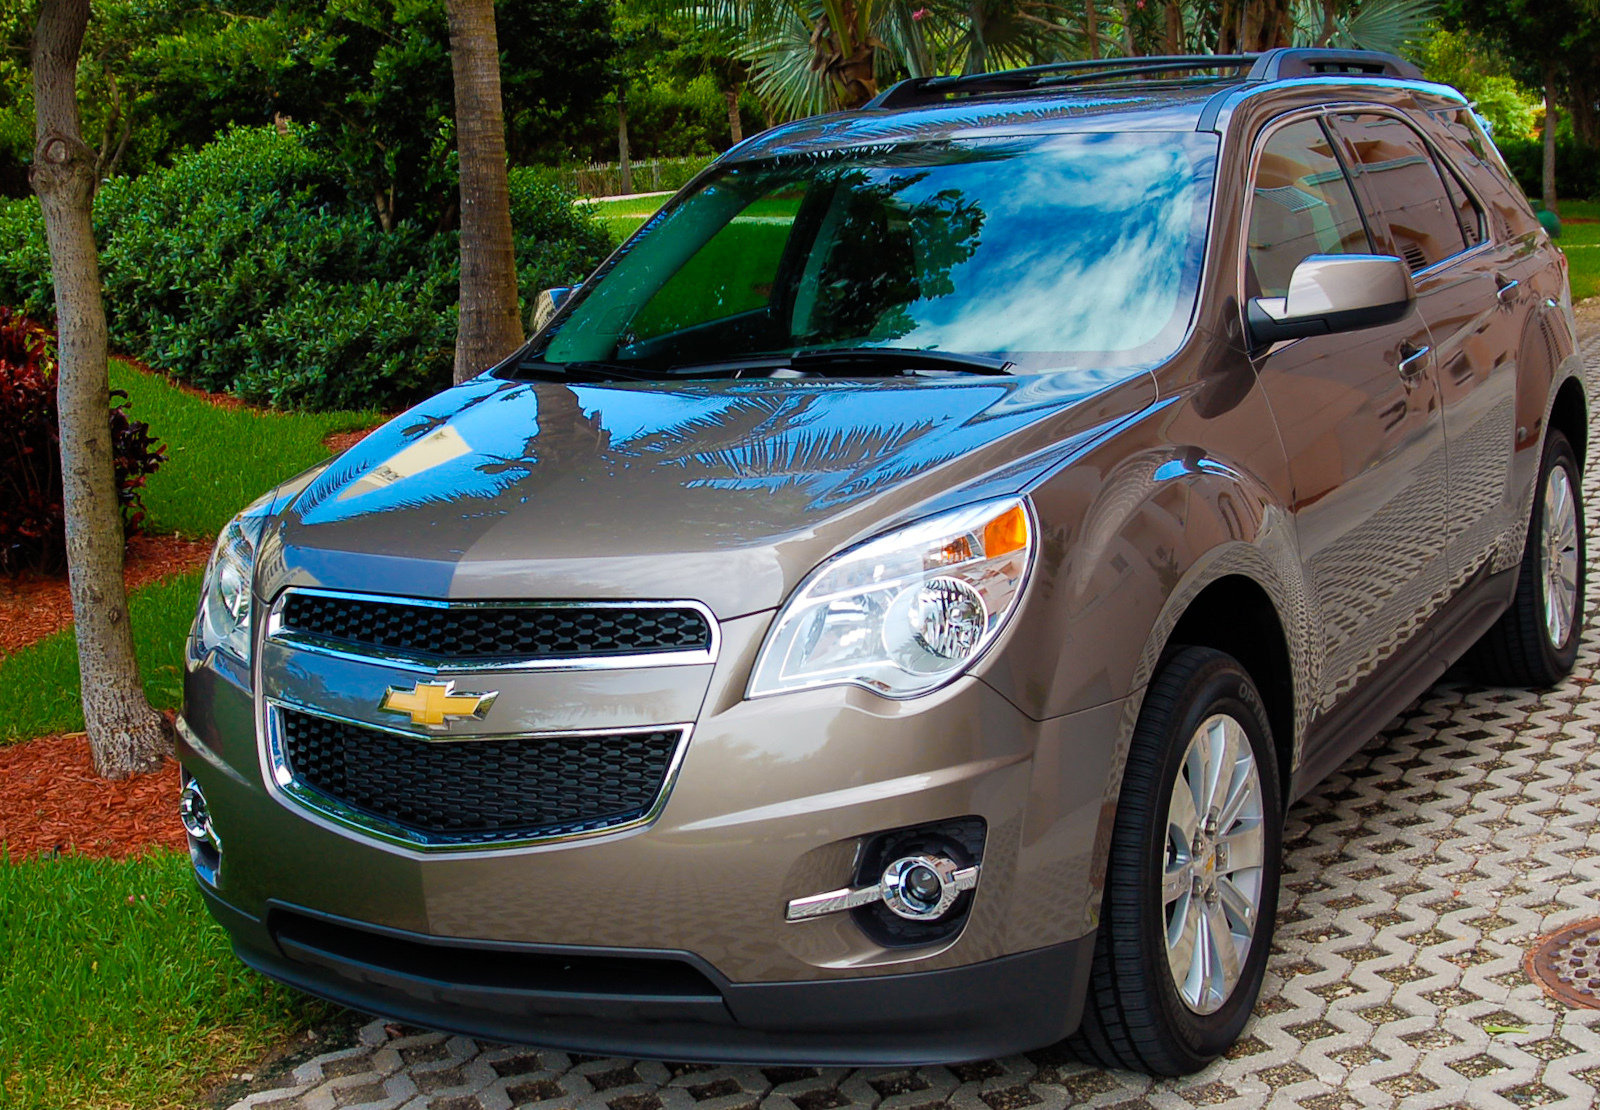 Car Jack 2010 Chevrolet Equinox Awd 2lt Review - Top Speed